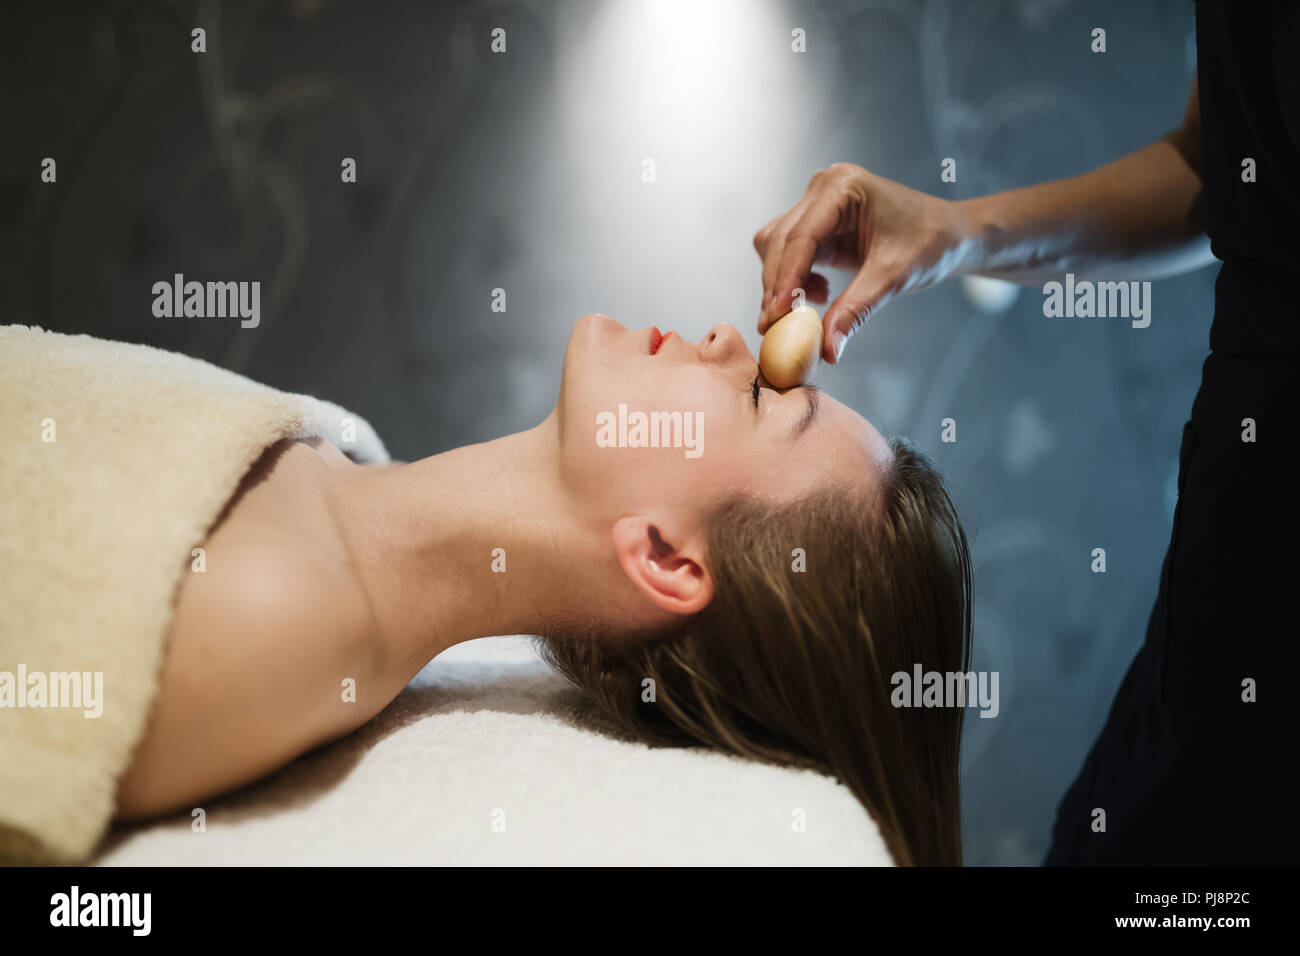 Masseur massaging face with heated objects - Stock Image